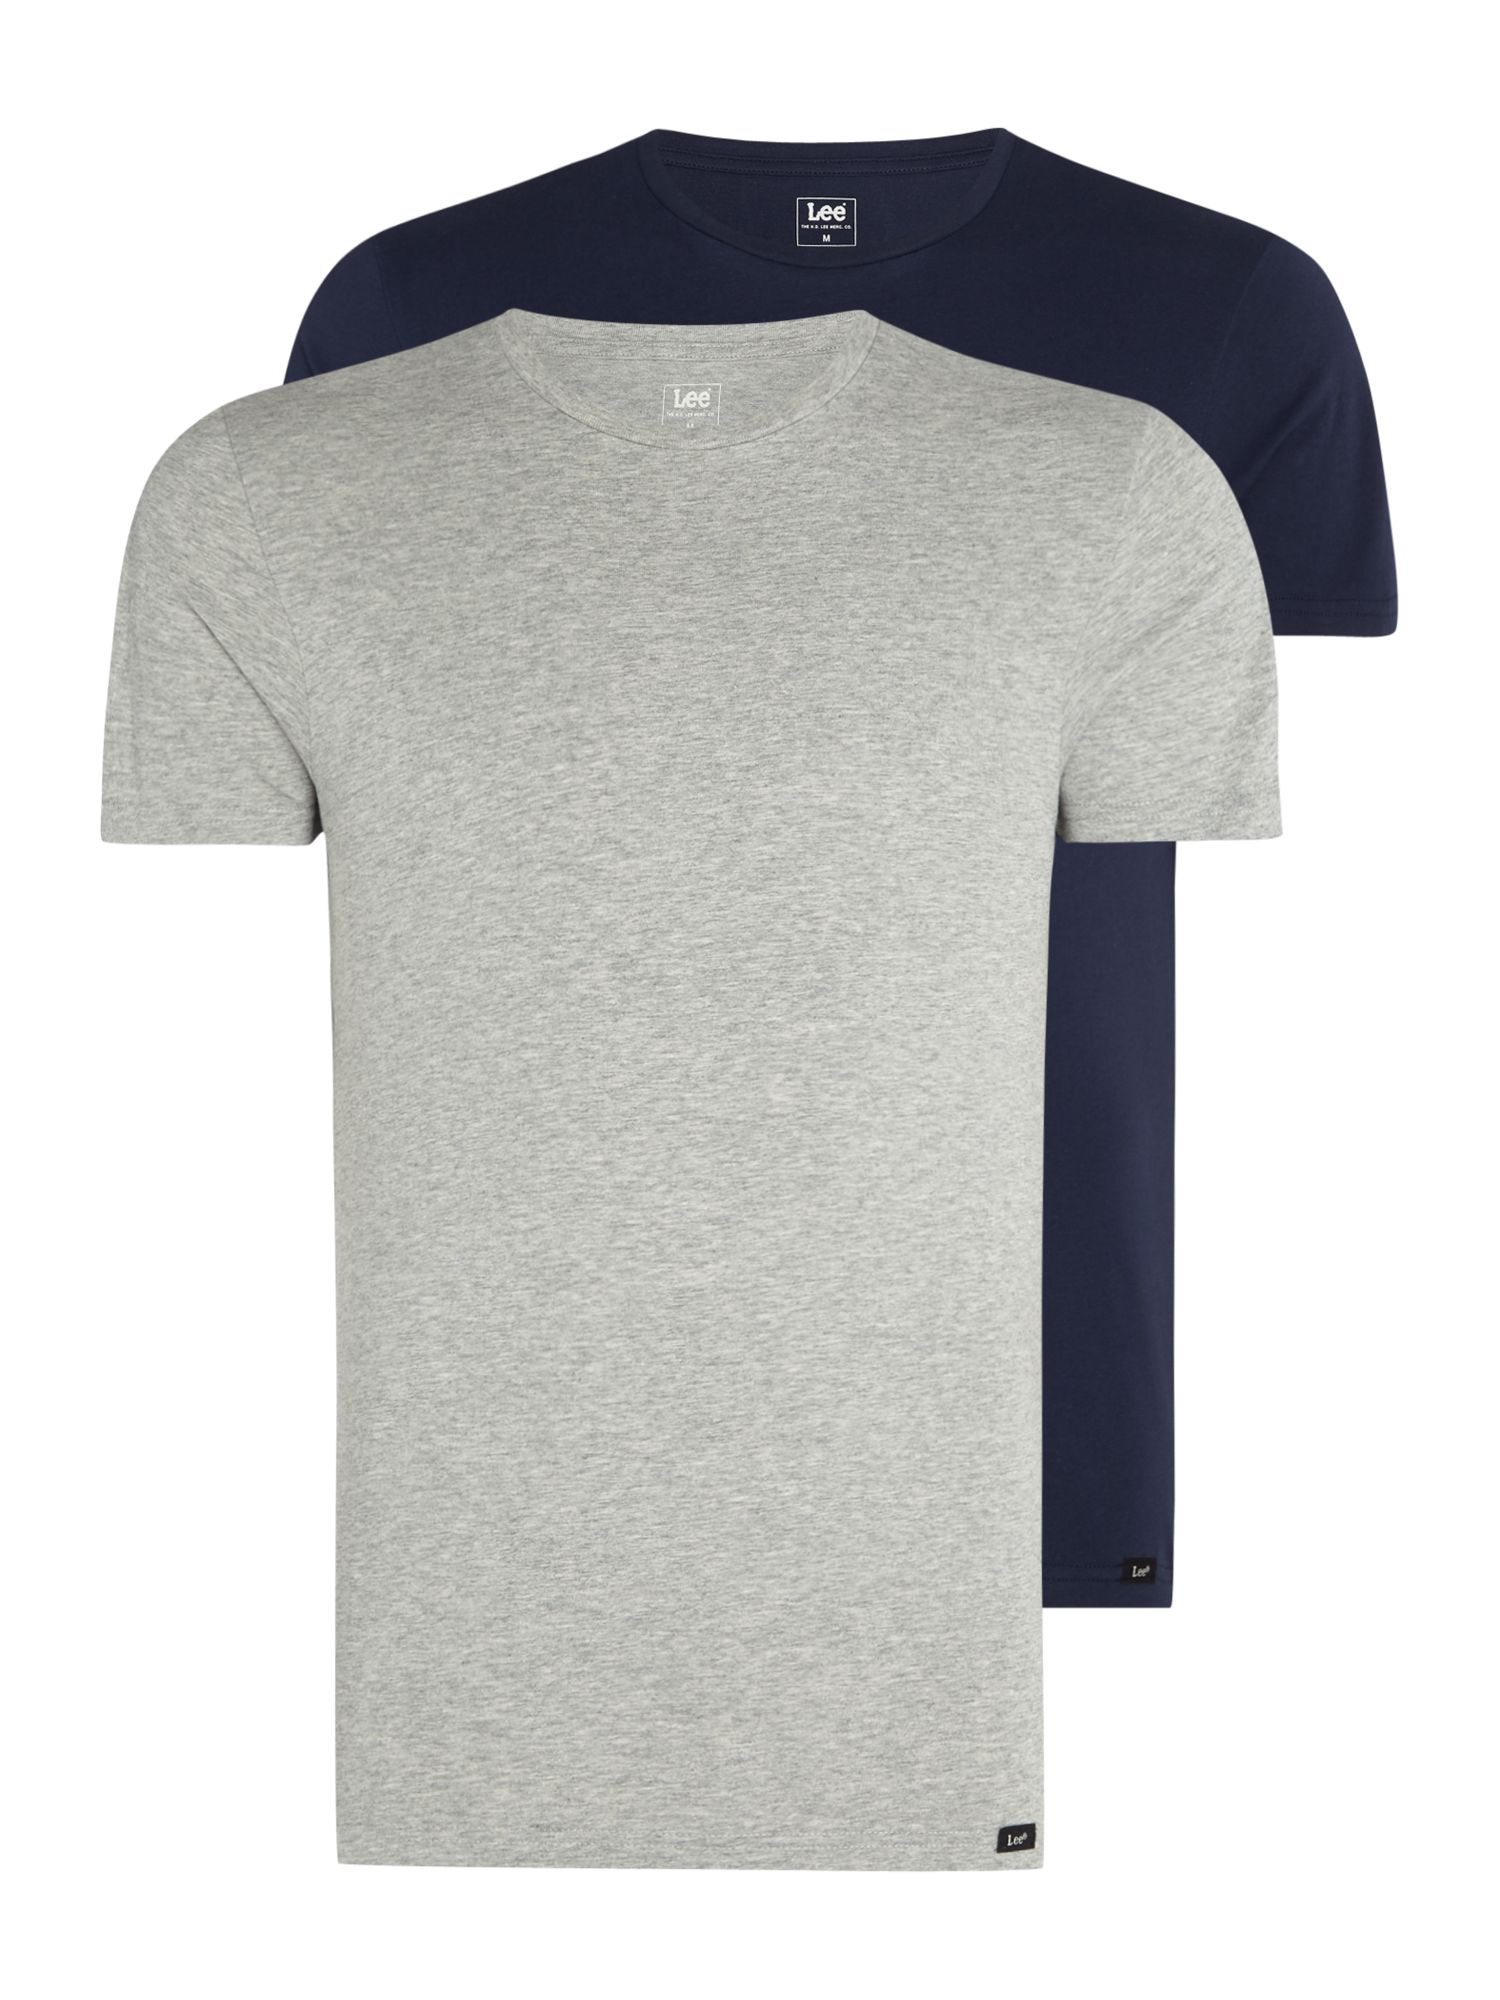 Men's Lee Short sleeve t-shirt twin pack, Grey Marl & Indigo